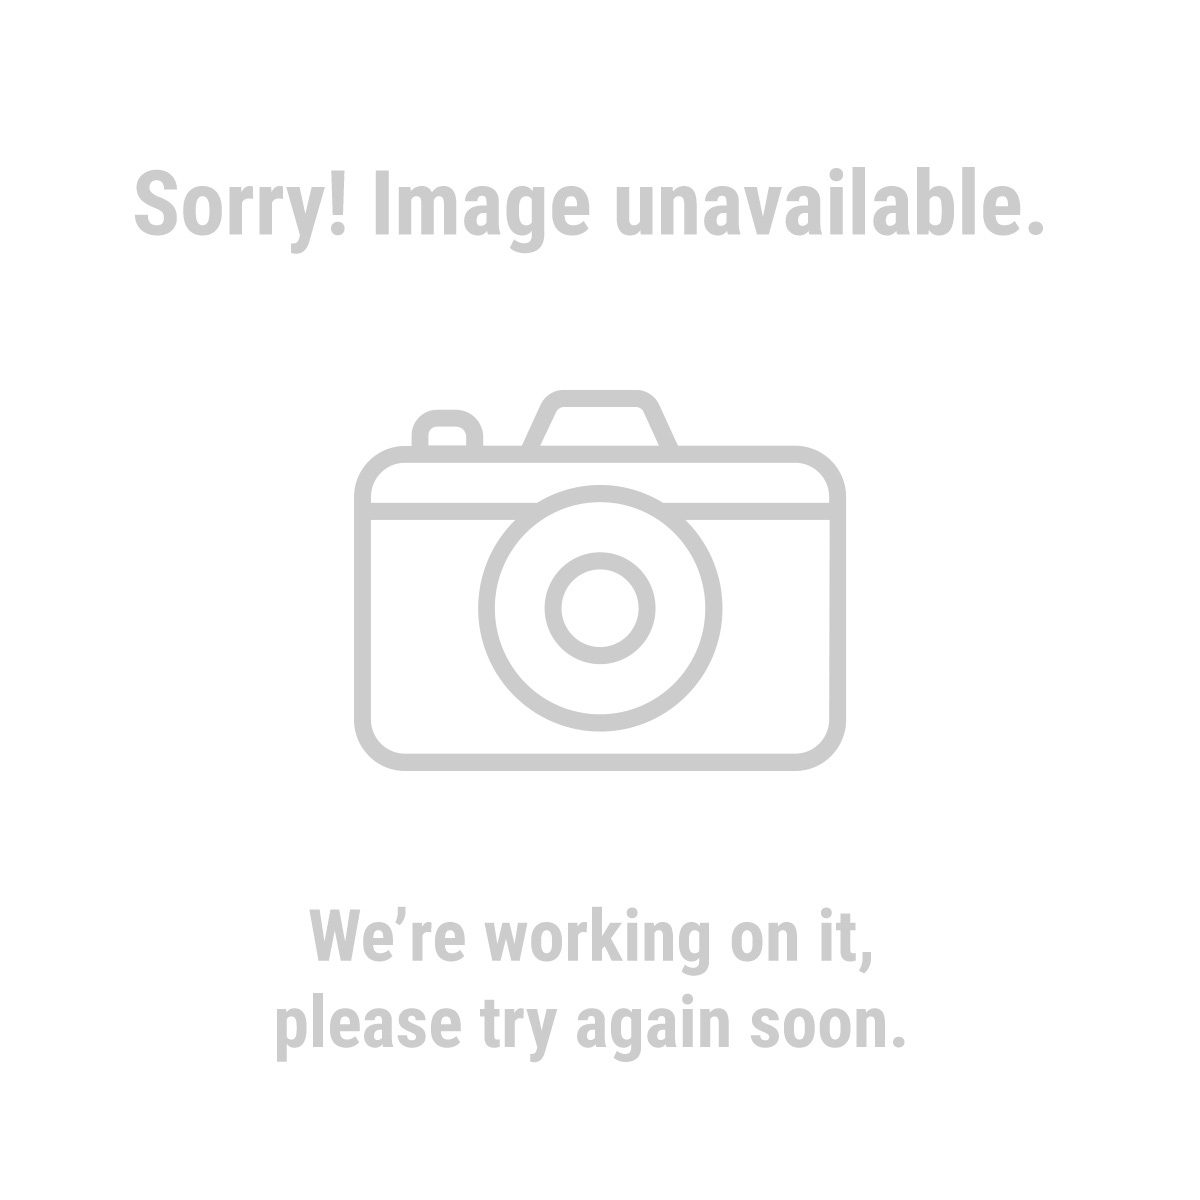 Warrior 69627 4 in. 120 Grit Flap Disc